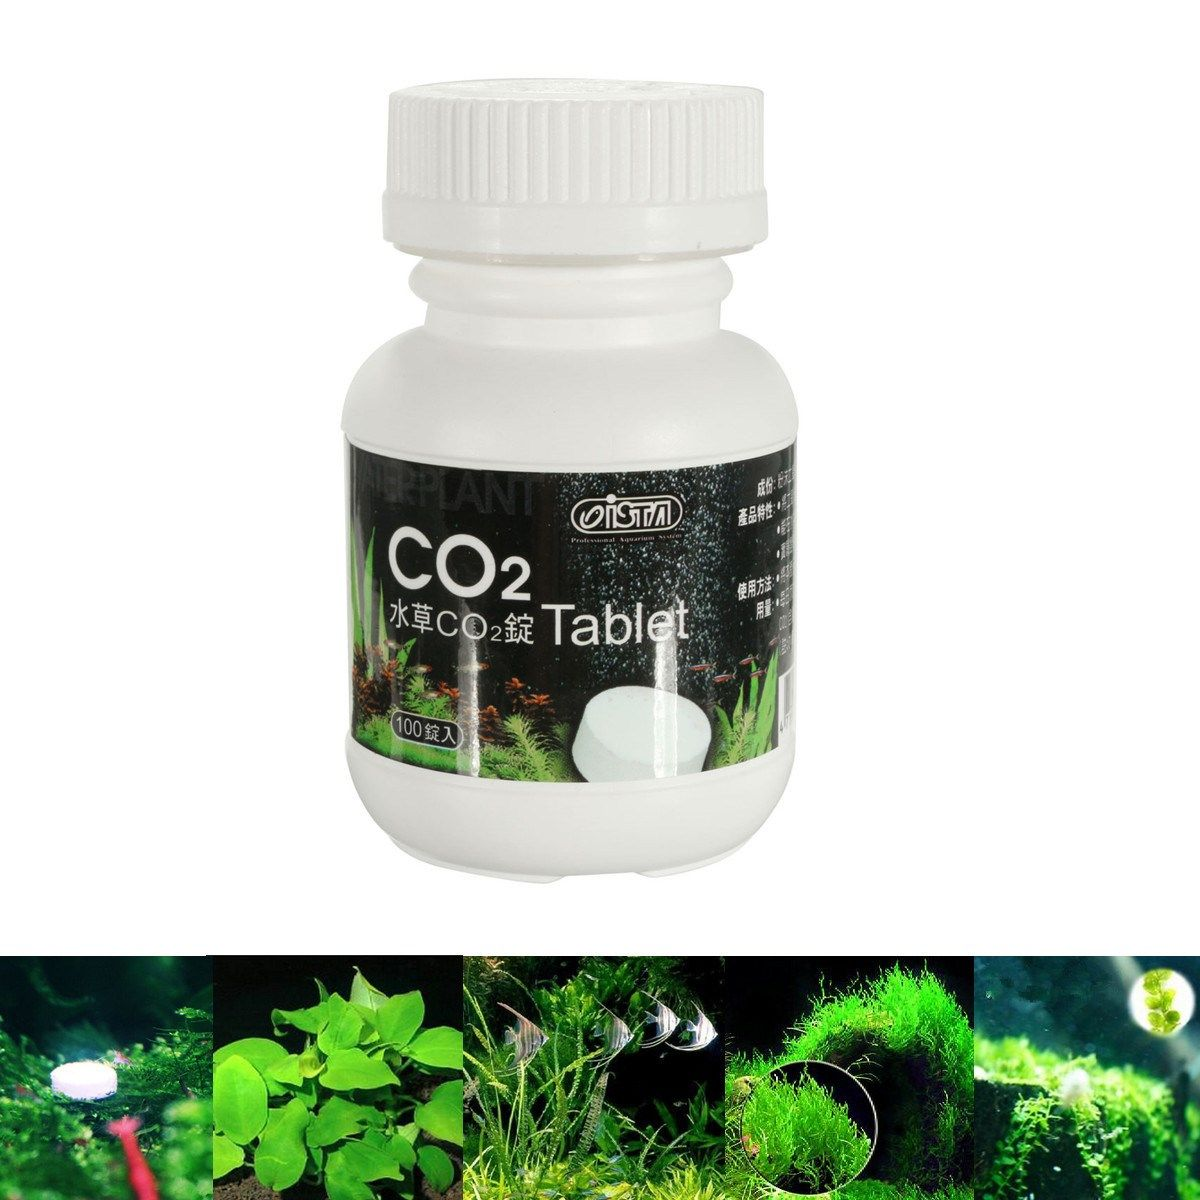 Aquarium fish tank co2 atomizer system - New 100pcs Fish Tank Ista Aquarium Co2 Adding Tablet Carbon Dioxide Water Plants Fertilizer Moss Diffuser